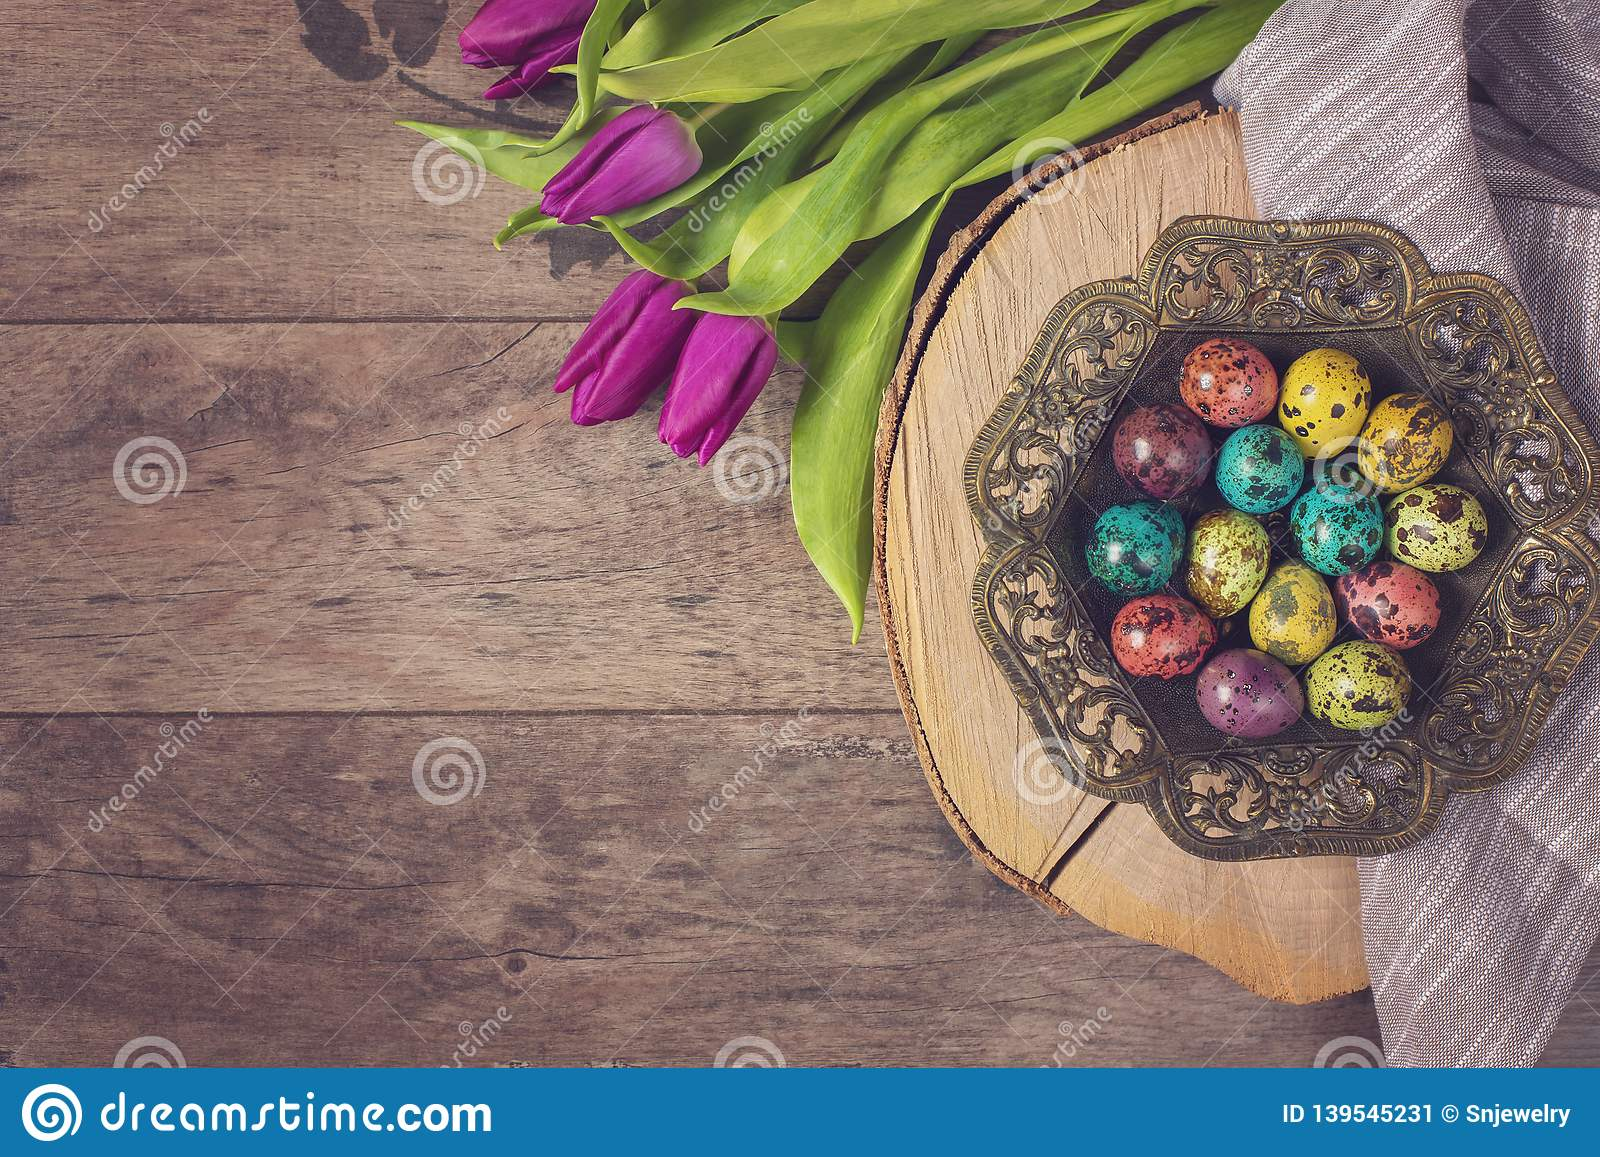 Dark photo of Easter quail eggs in an ancient metal bowl. Beautiful spring flowers - purple tulips on a wooden background. Floral